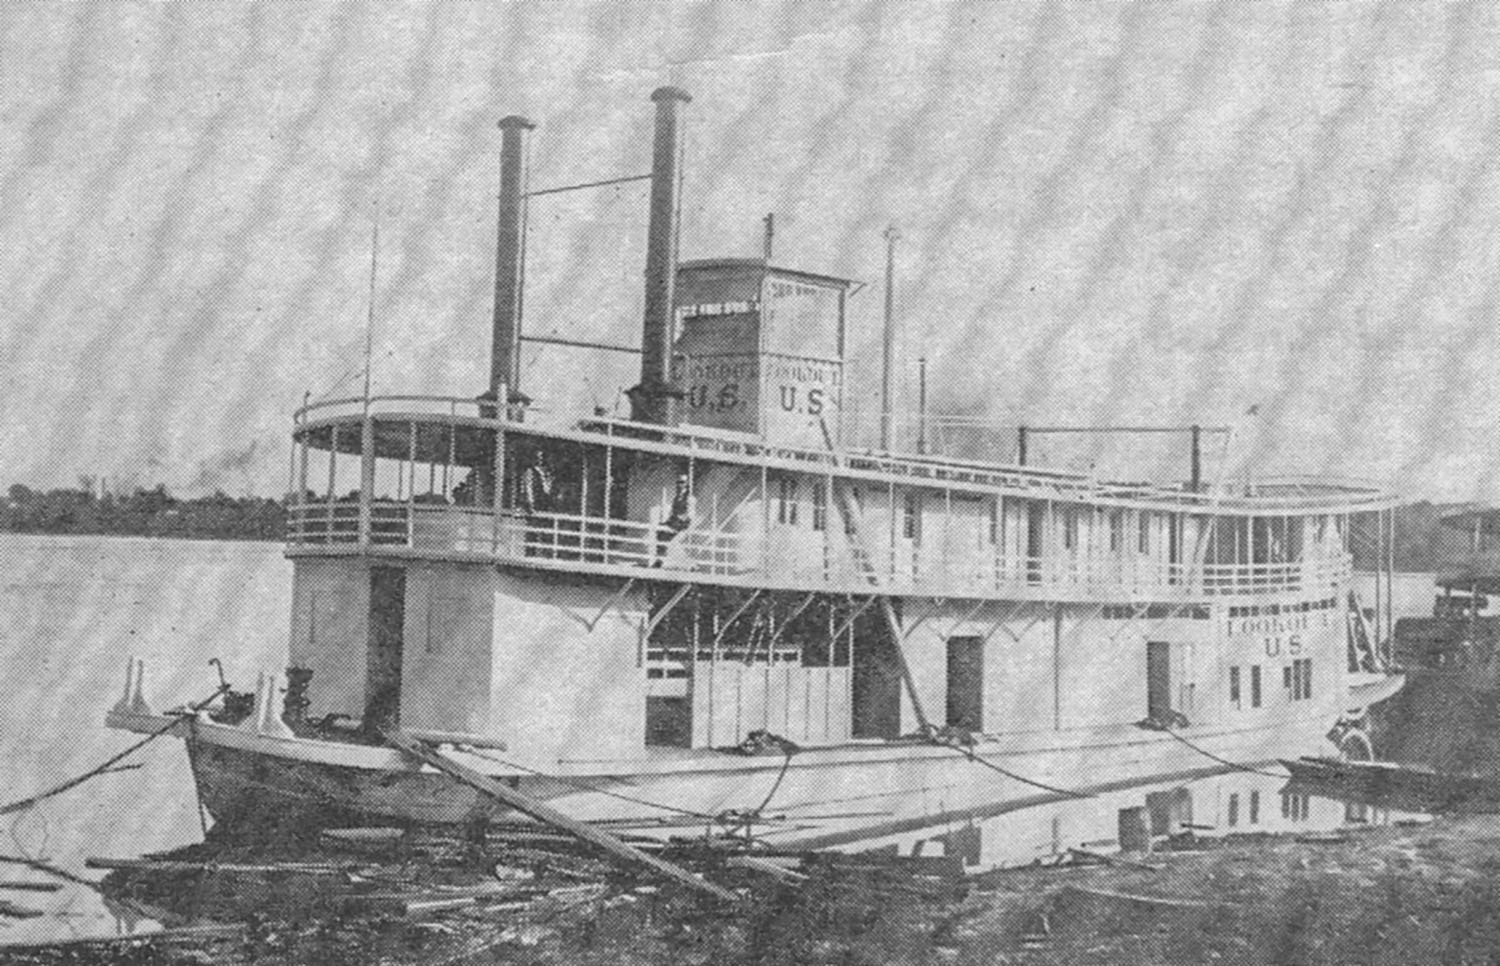 The towboat Lookout under completion at the Howard Shipyard in 1896.